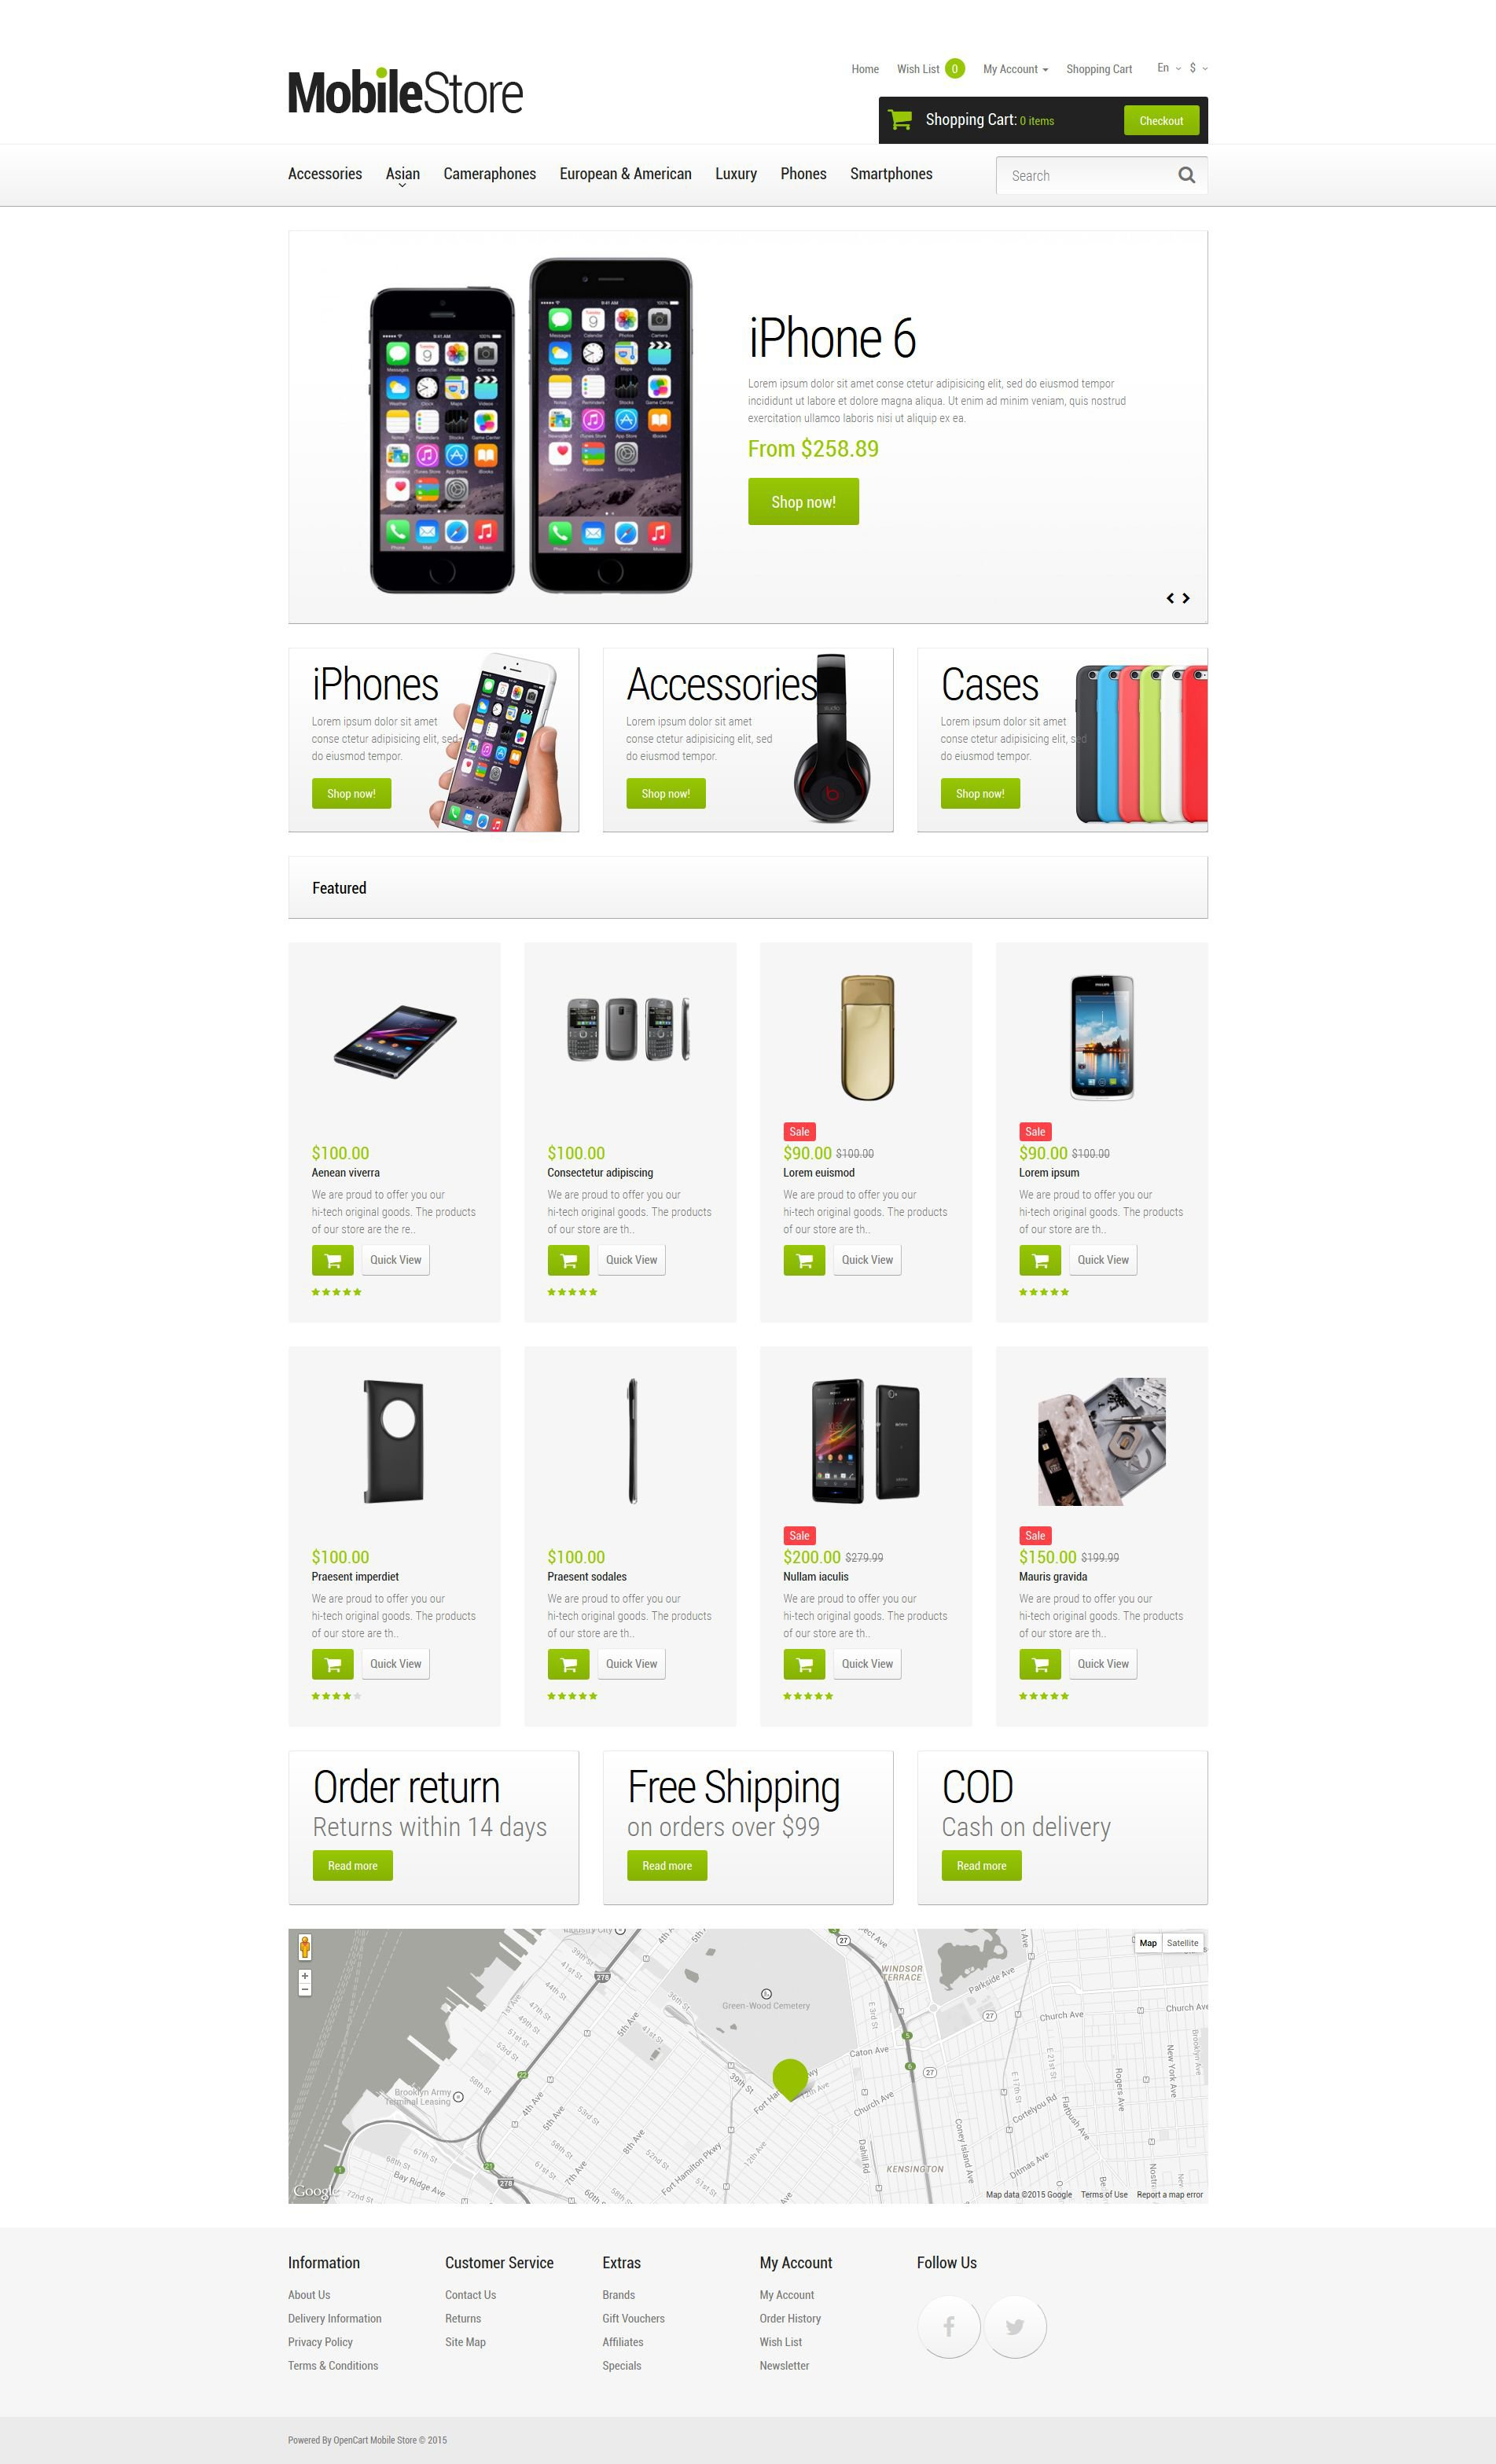 The Mobile Store OpenCart Design 53398, one of the best OpenCart templates of its kind (electronics, most popular), also known as mobile store OpenCart template, phone OpenCart template, service OpenCart template, time OpenCart template, price OpenCart template, plan OpenCart template, entertainment OpenCart template, content OpenCart template, talk OpenCart template, connection OpenCart template, communication OpenCart template, home OpenCart template, new OpenCart template, projects OpenCart template, specials OpenCart template, my account OpenCart template, contacts OpenCart template, shopping cart OpenCart template, images OpenCart template, catalog OpenCart template, offer OpenCart template, save OpenCart template, savings OpenCart template, profit OpenCart template, shippings OpenCart template, returns OpenCart template, privacy OpenCart template, conditions OpenCart template, cell OpenCart template, phonescor and related with mobile store, phone, service, time, price, plan, entertainment, content, talk, connection, communication, home, new, projects, specials, my account, contacts, shopping cart, images, catalog, offer, save, savings, profit, shippings, returns, privacy, conditions, cell, phonescor, etc.